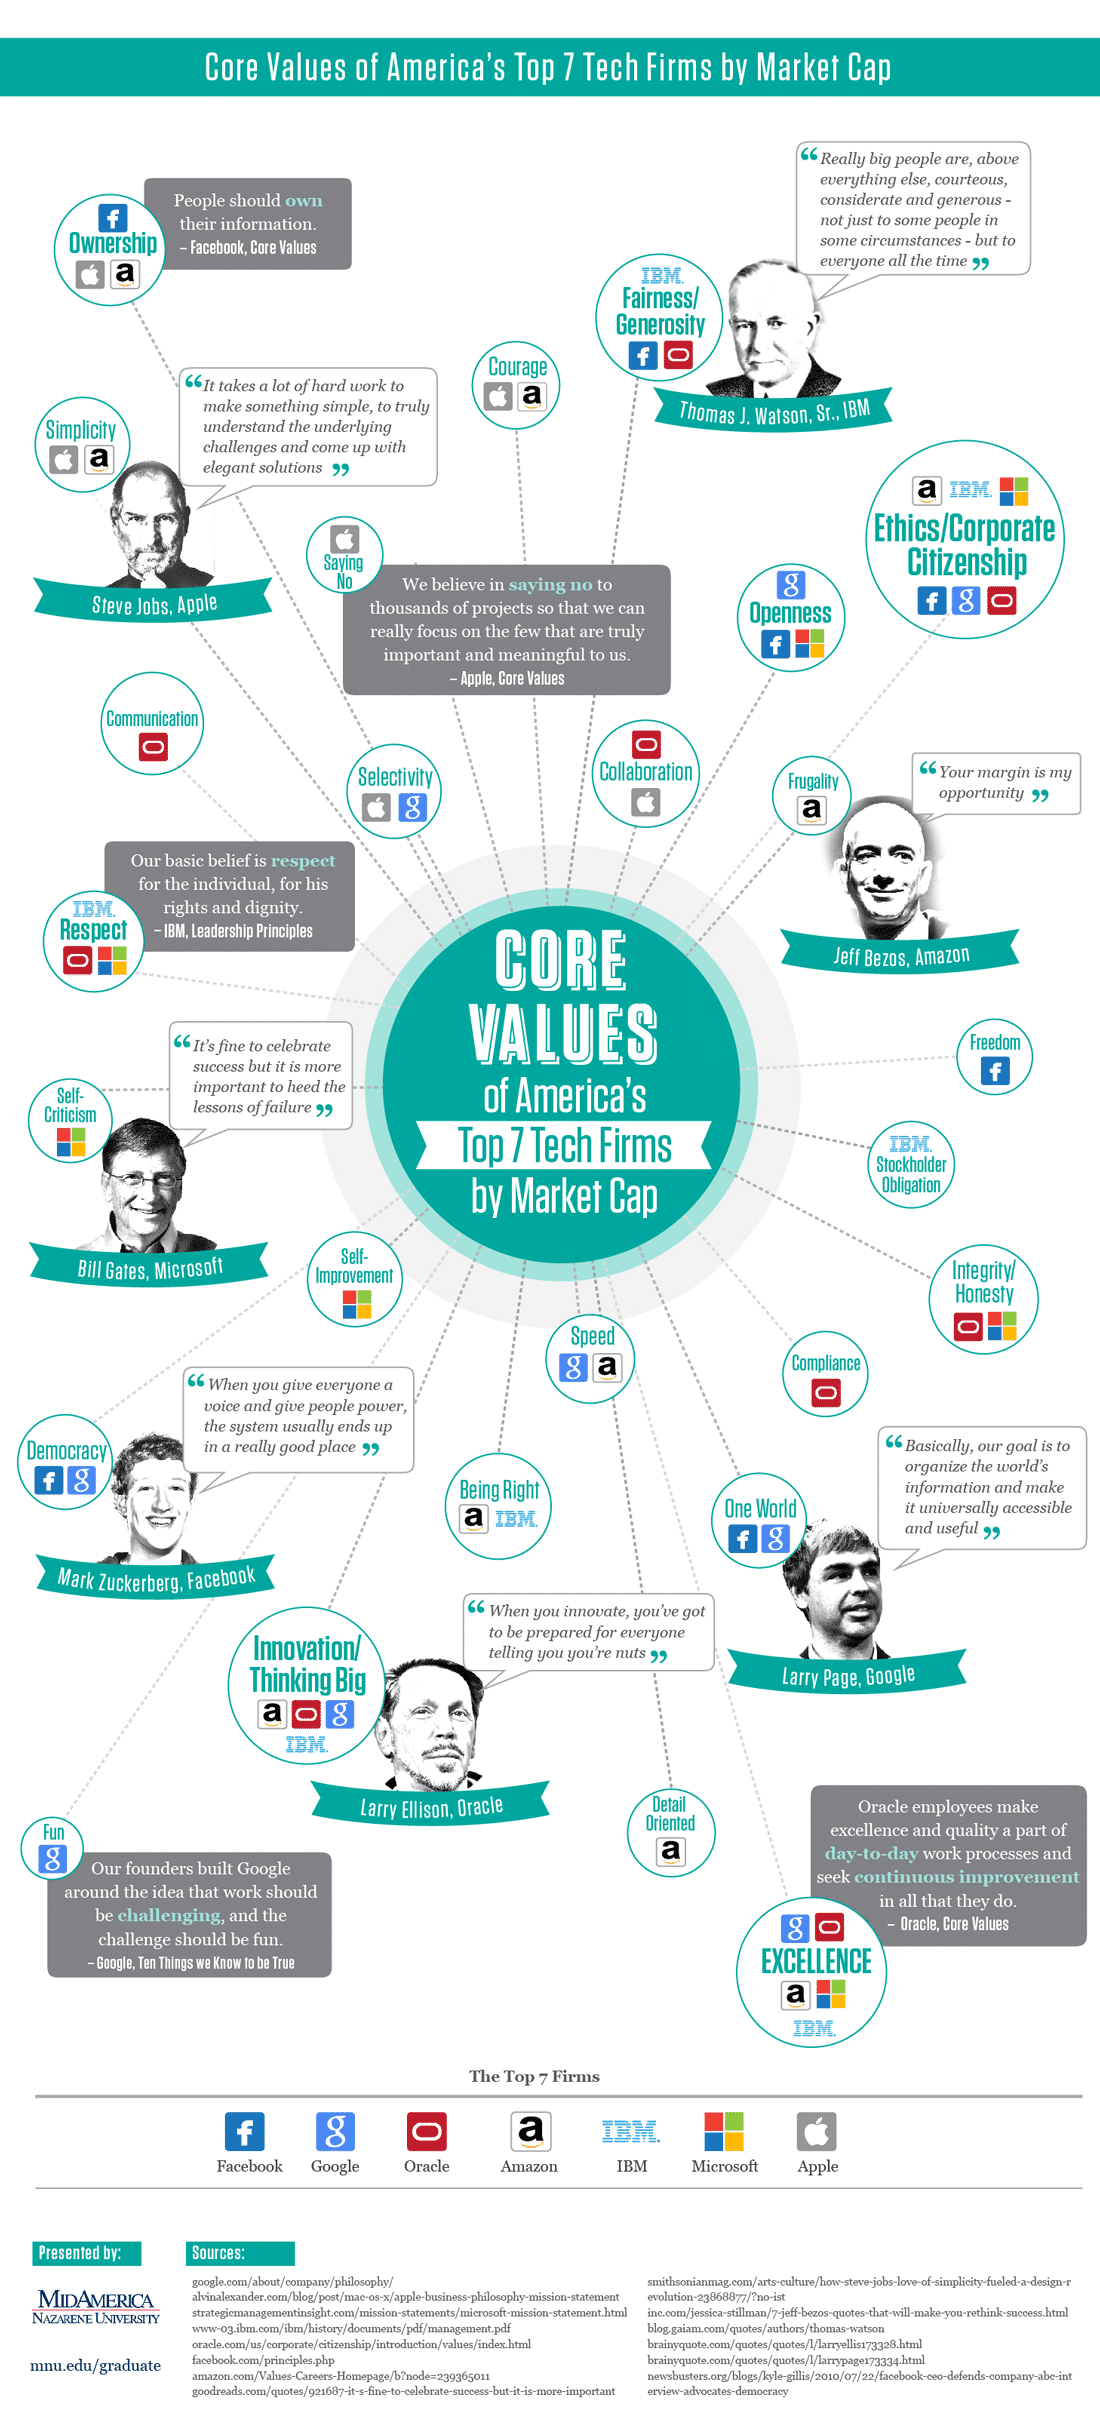 Core Values Of Successful Tech Companies Infographic